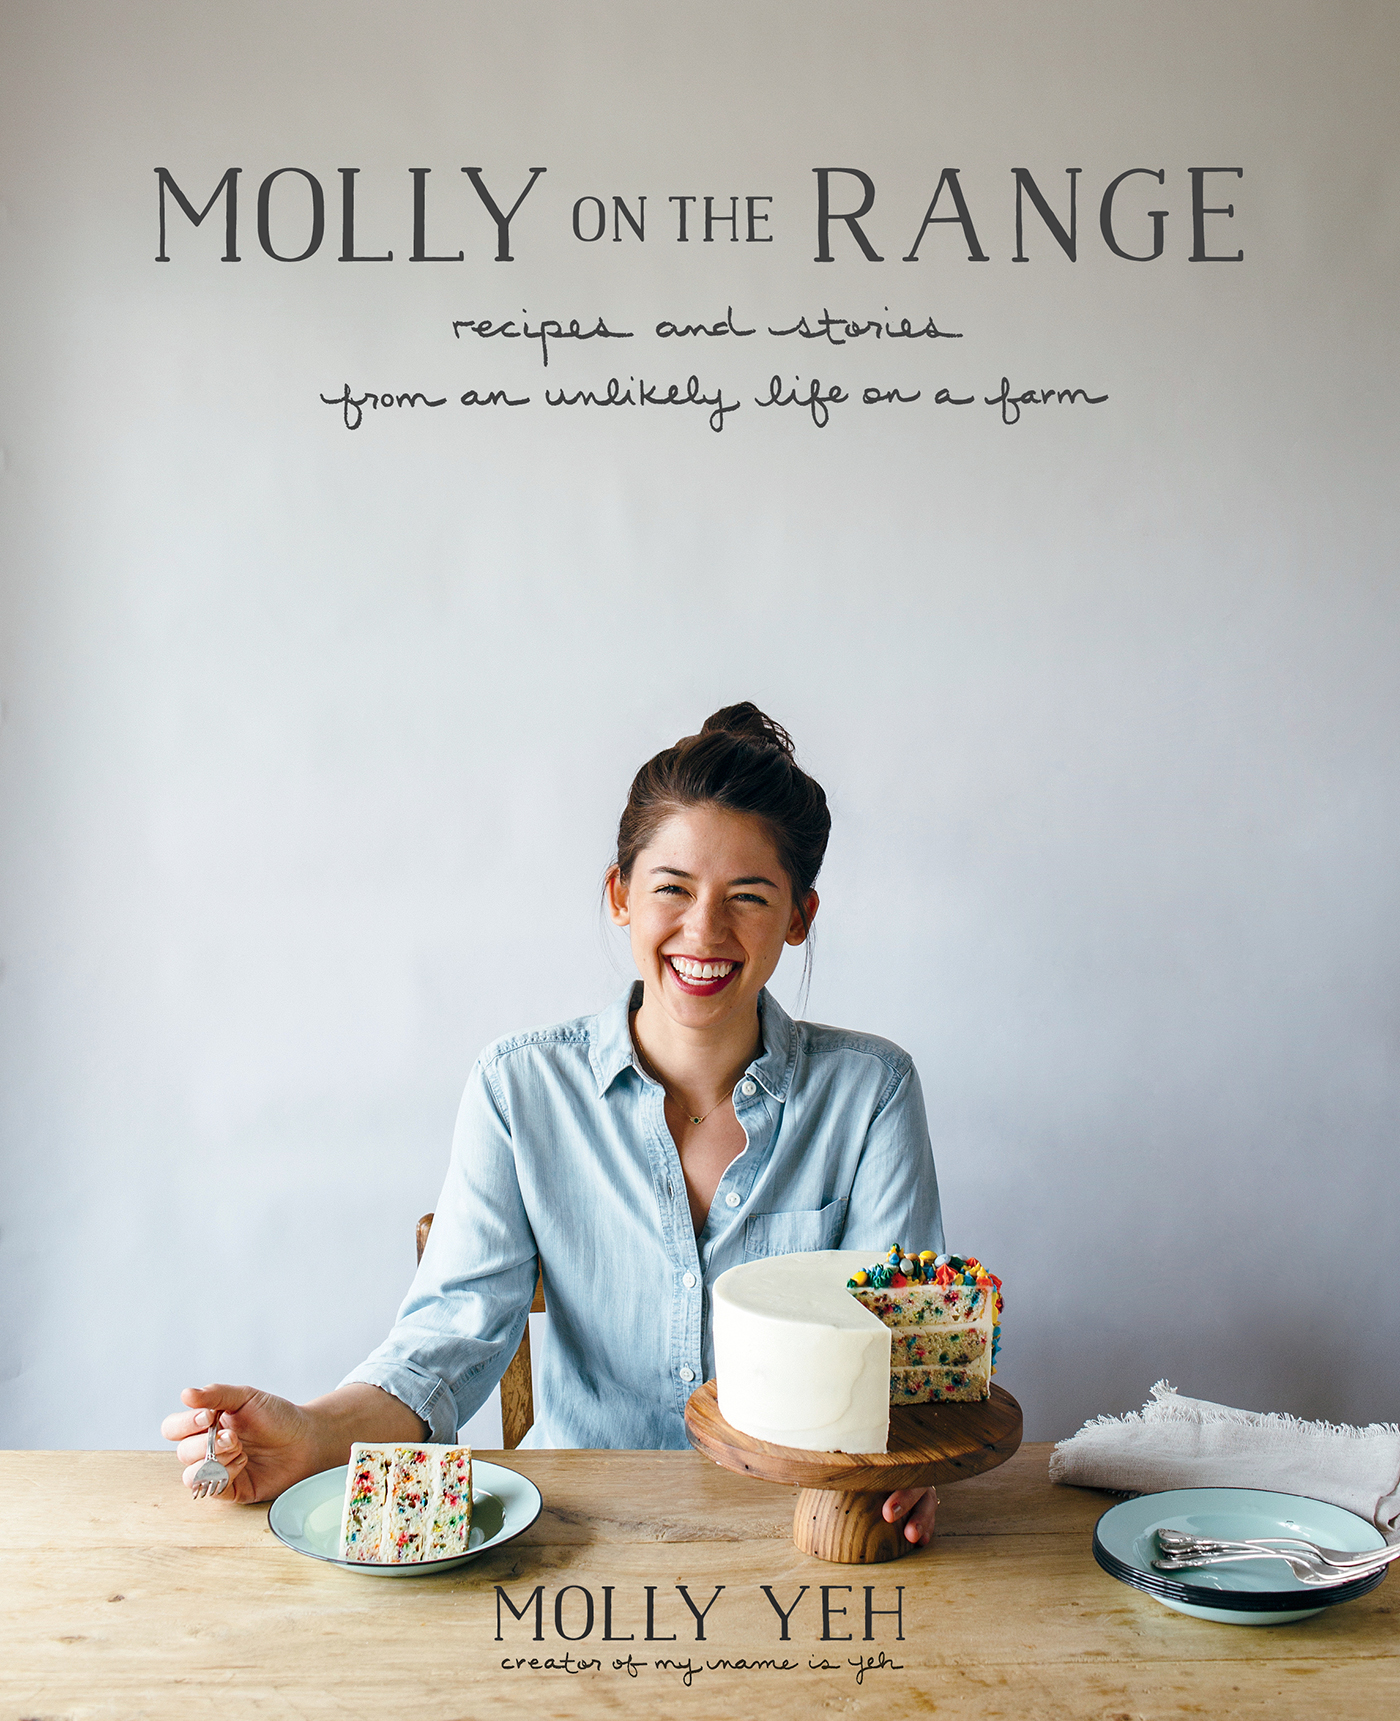 MollyontheRange_Cover_05.27.16.jpg